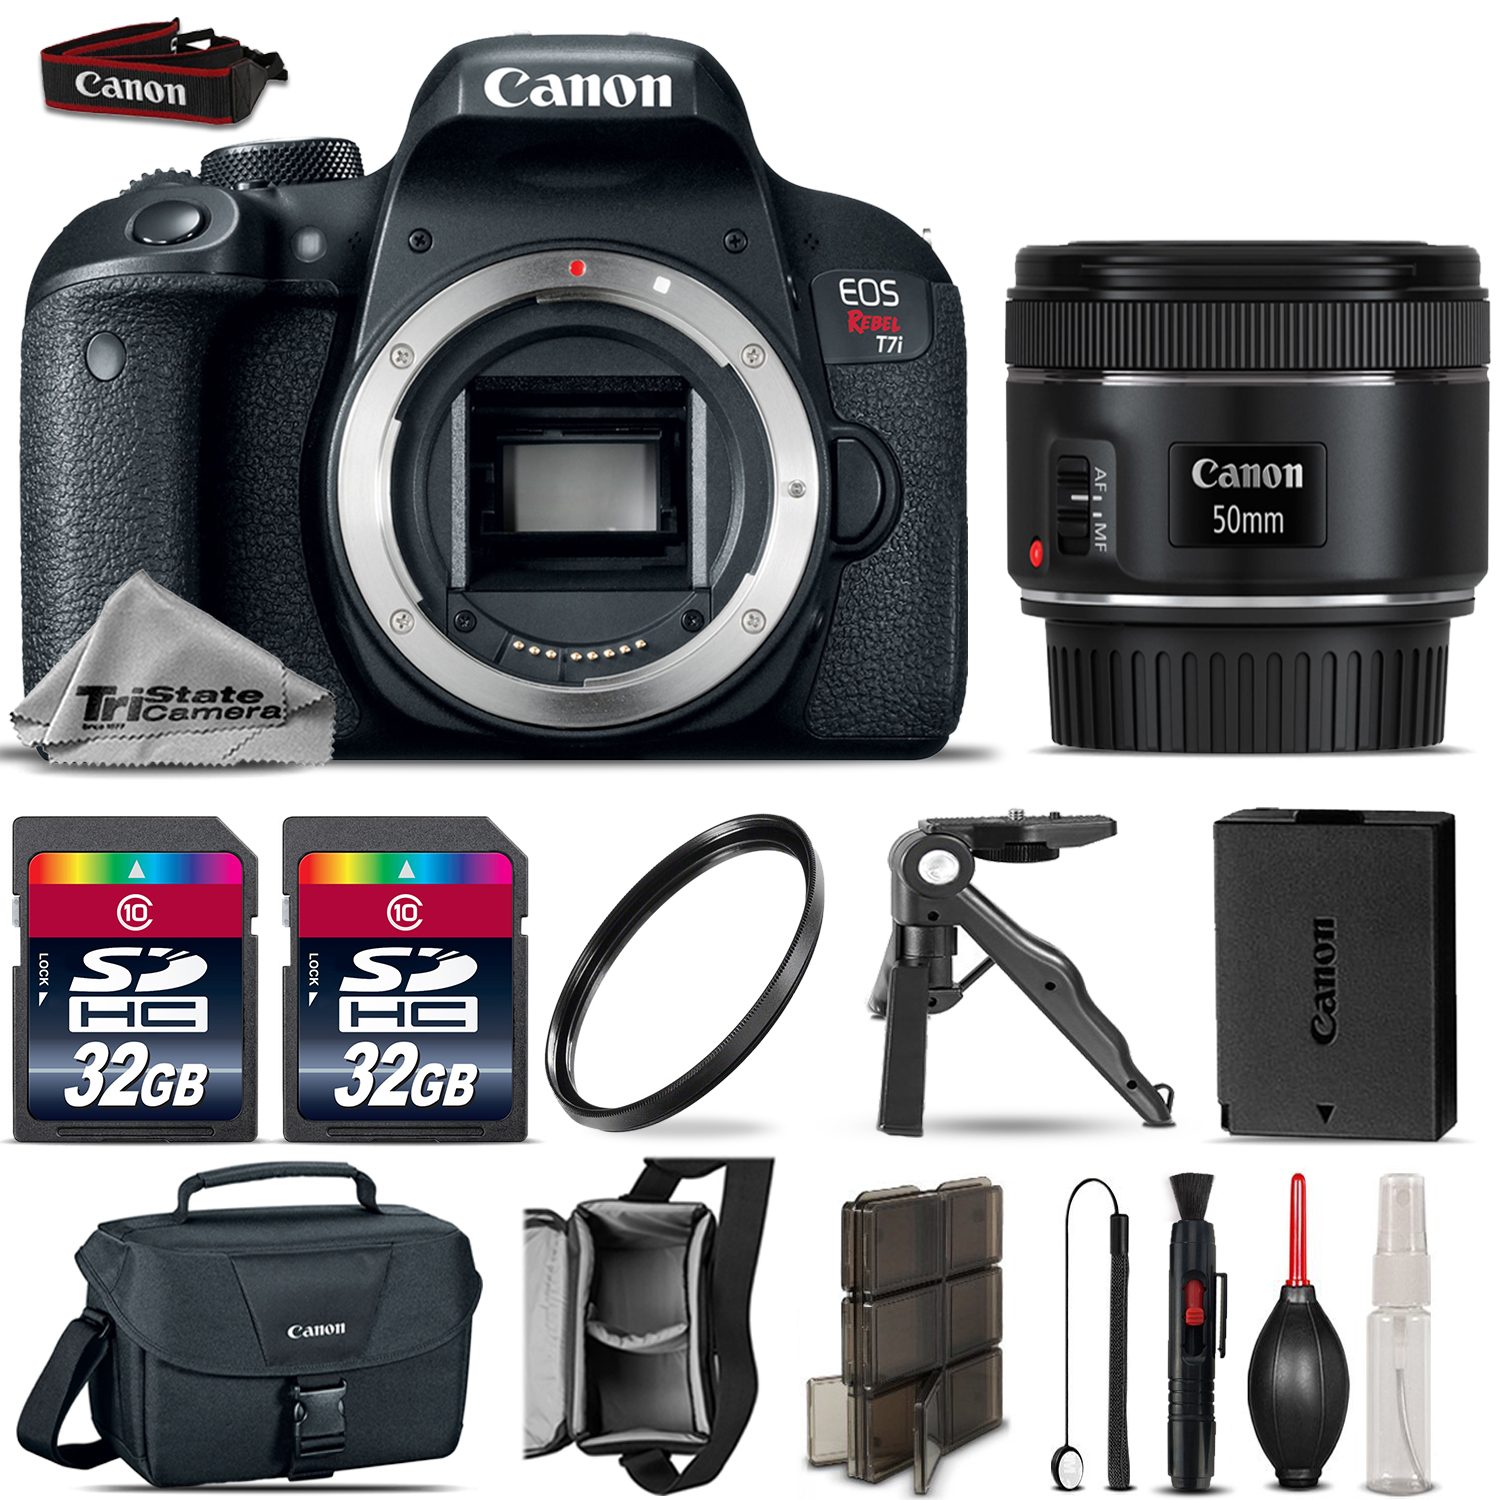 EOS Rebel T7i DSLR Camera 800D + 50mm 1.8 STM + Tripod Grip + 64GB + More! *FREE SHIPPING*